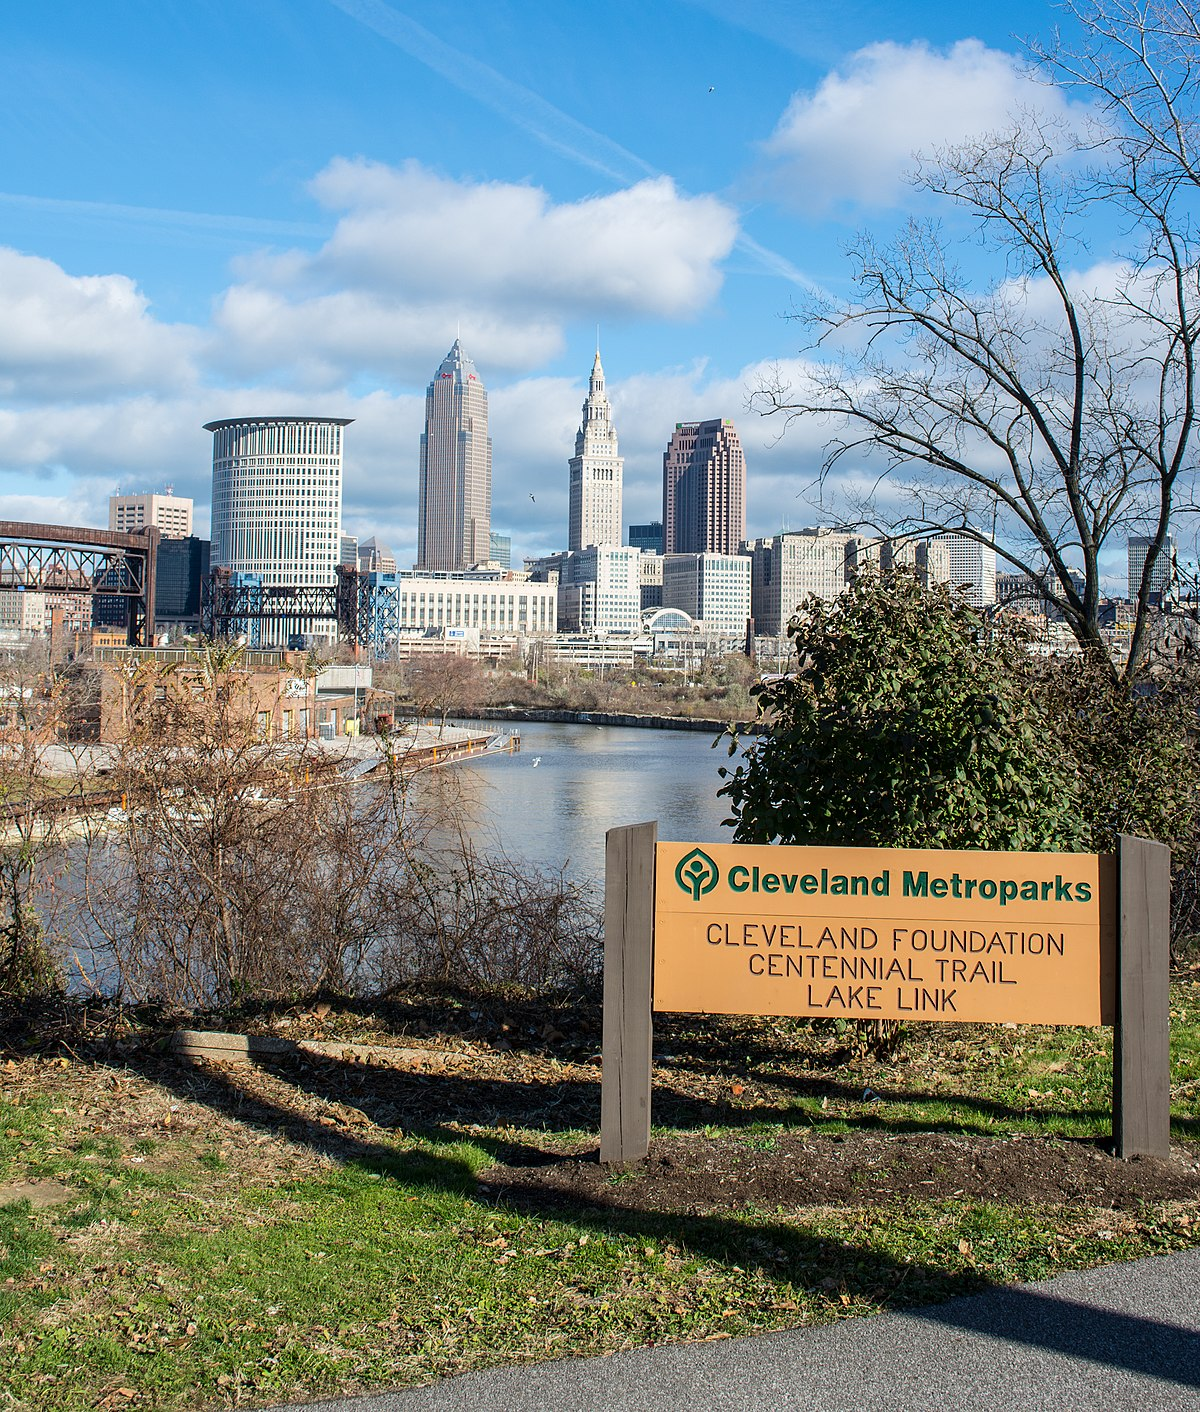 Cleveland foundation centennial lake link trail wikipedia publicscrutiny Gallery